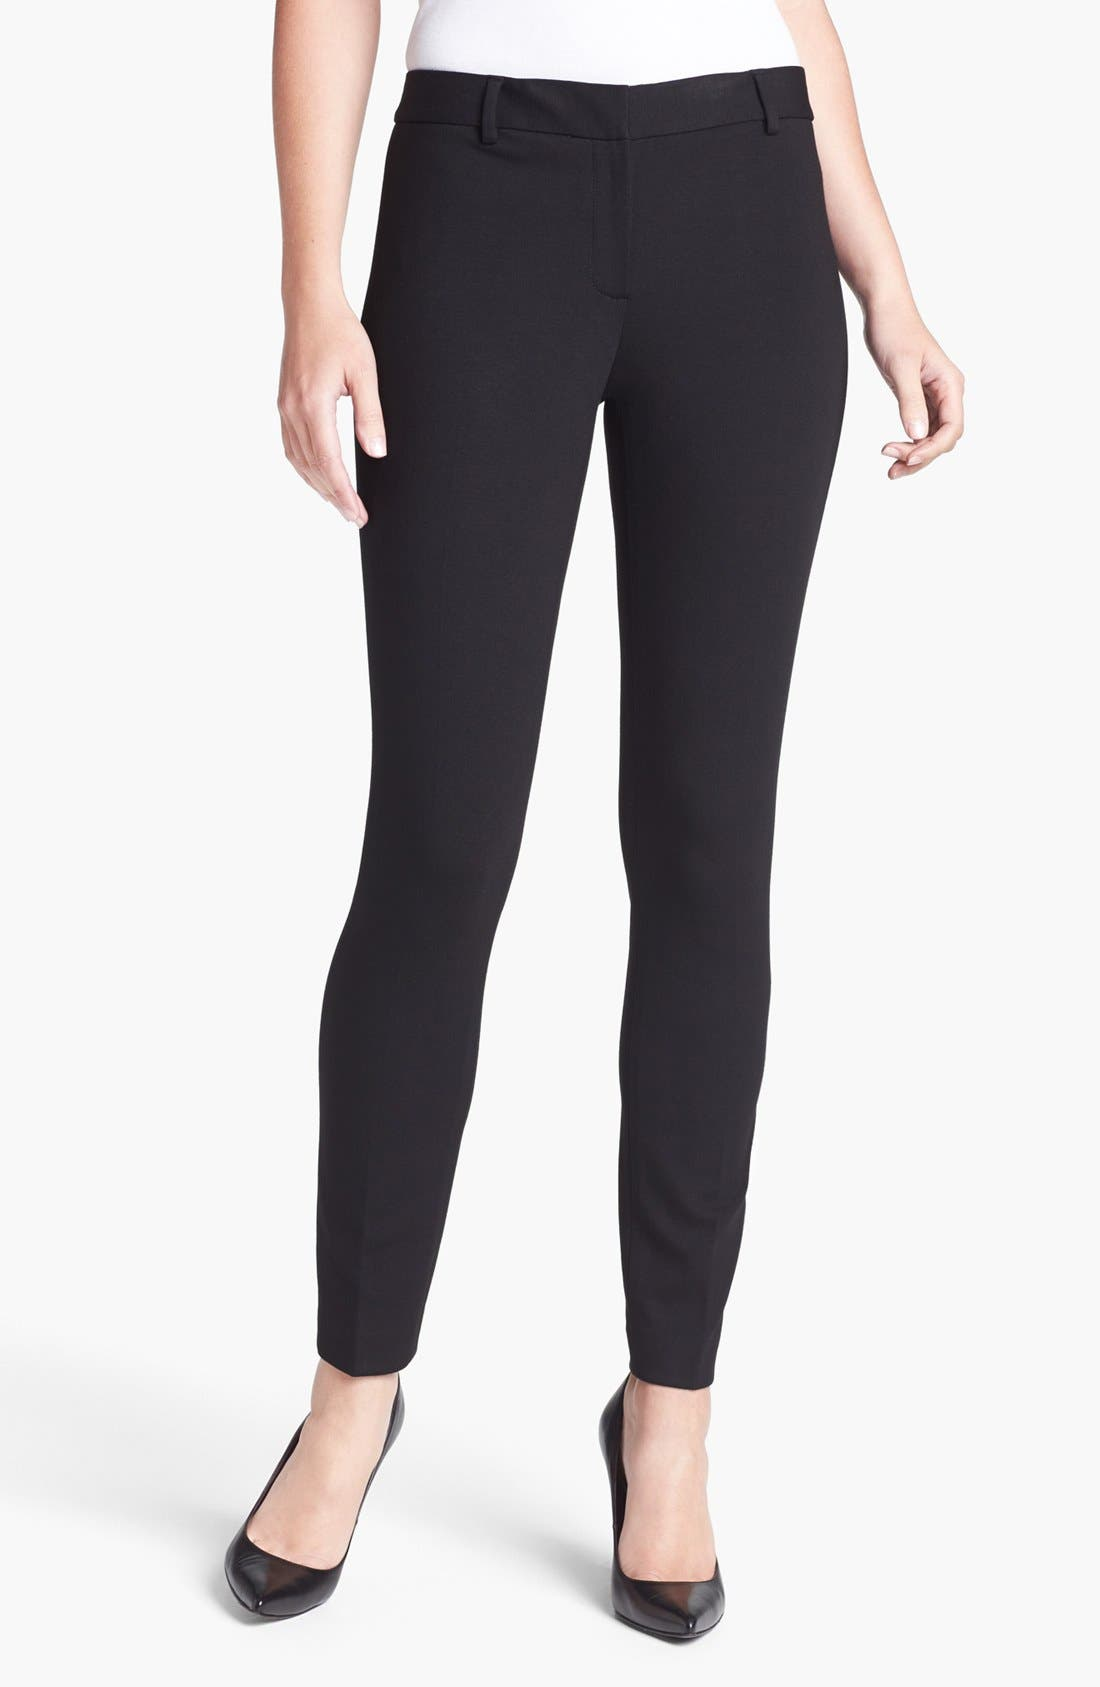 Alternate Image 1 Selected - Elie Tahari 'Verda' Slim Pants